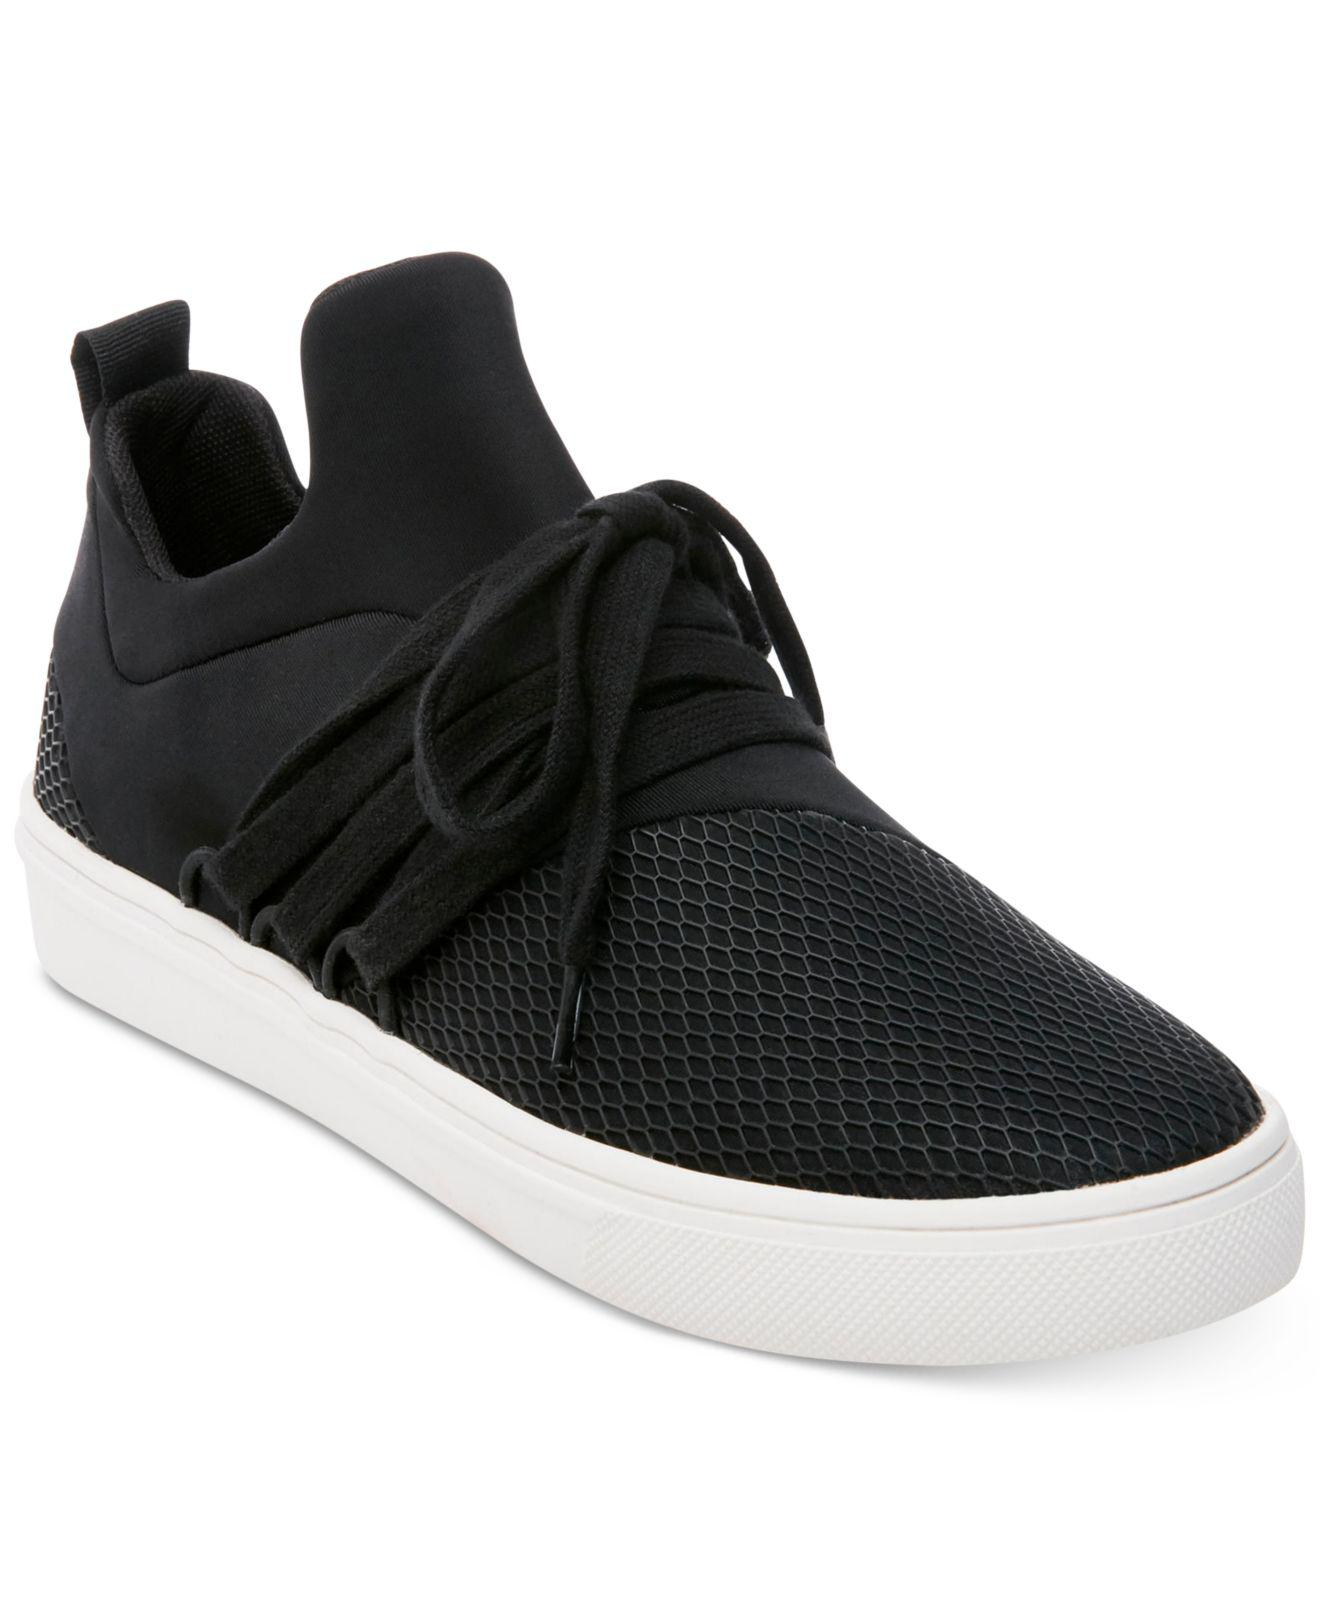 3834ace48f9 Steve Madden Women's Lancer Athletic Sneakers in Black - Lyst